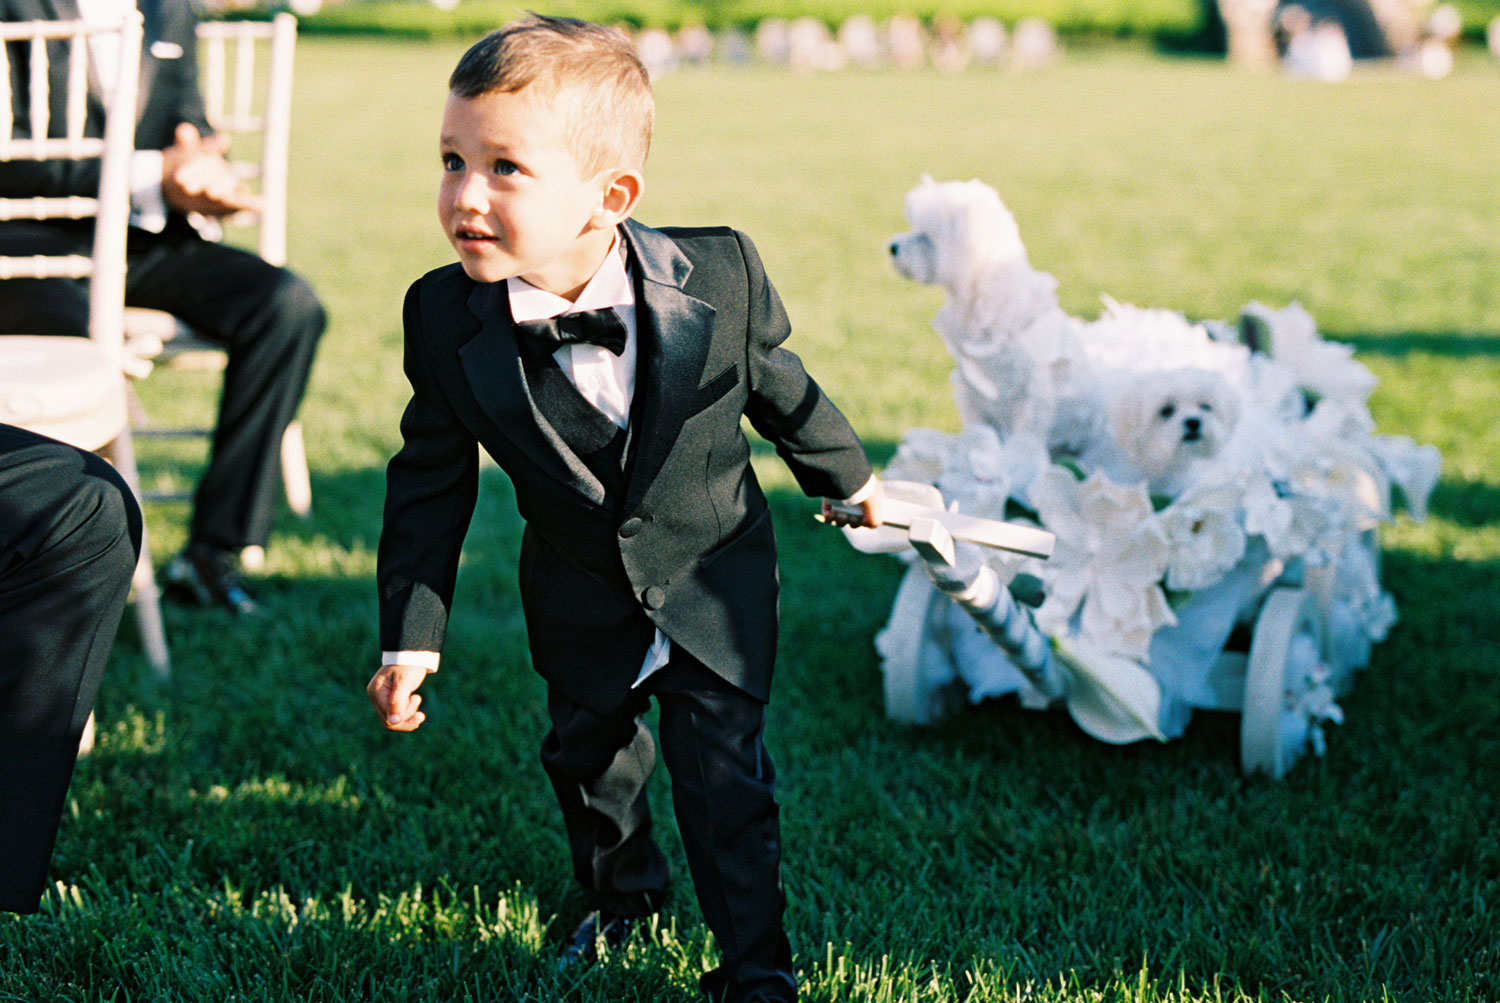 wedding ceremony outdoor young ring bearer pulling white wagon with little white dogs